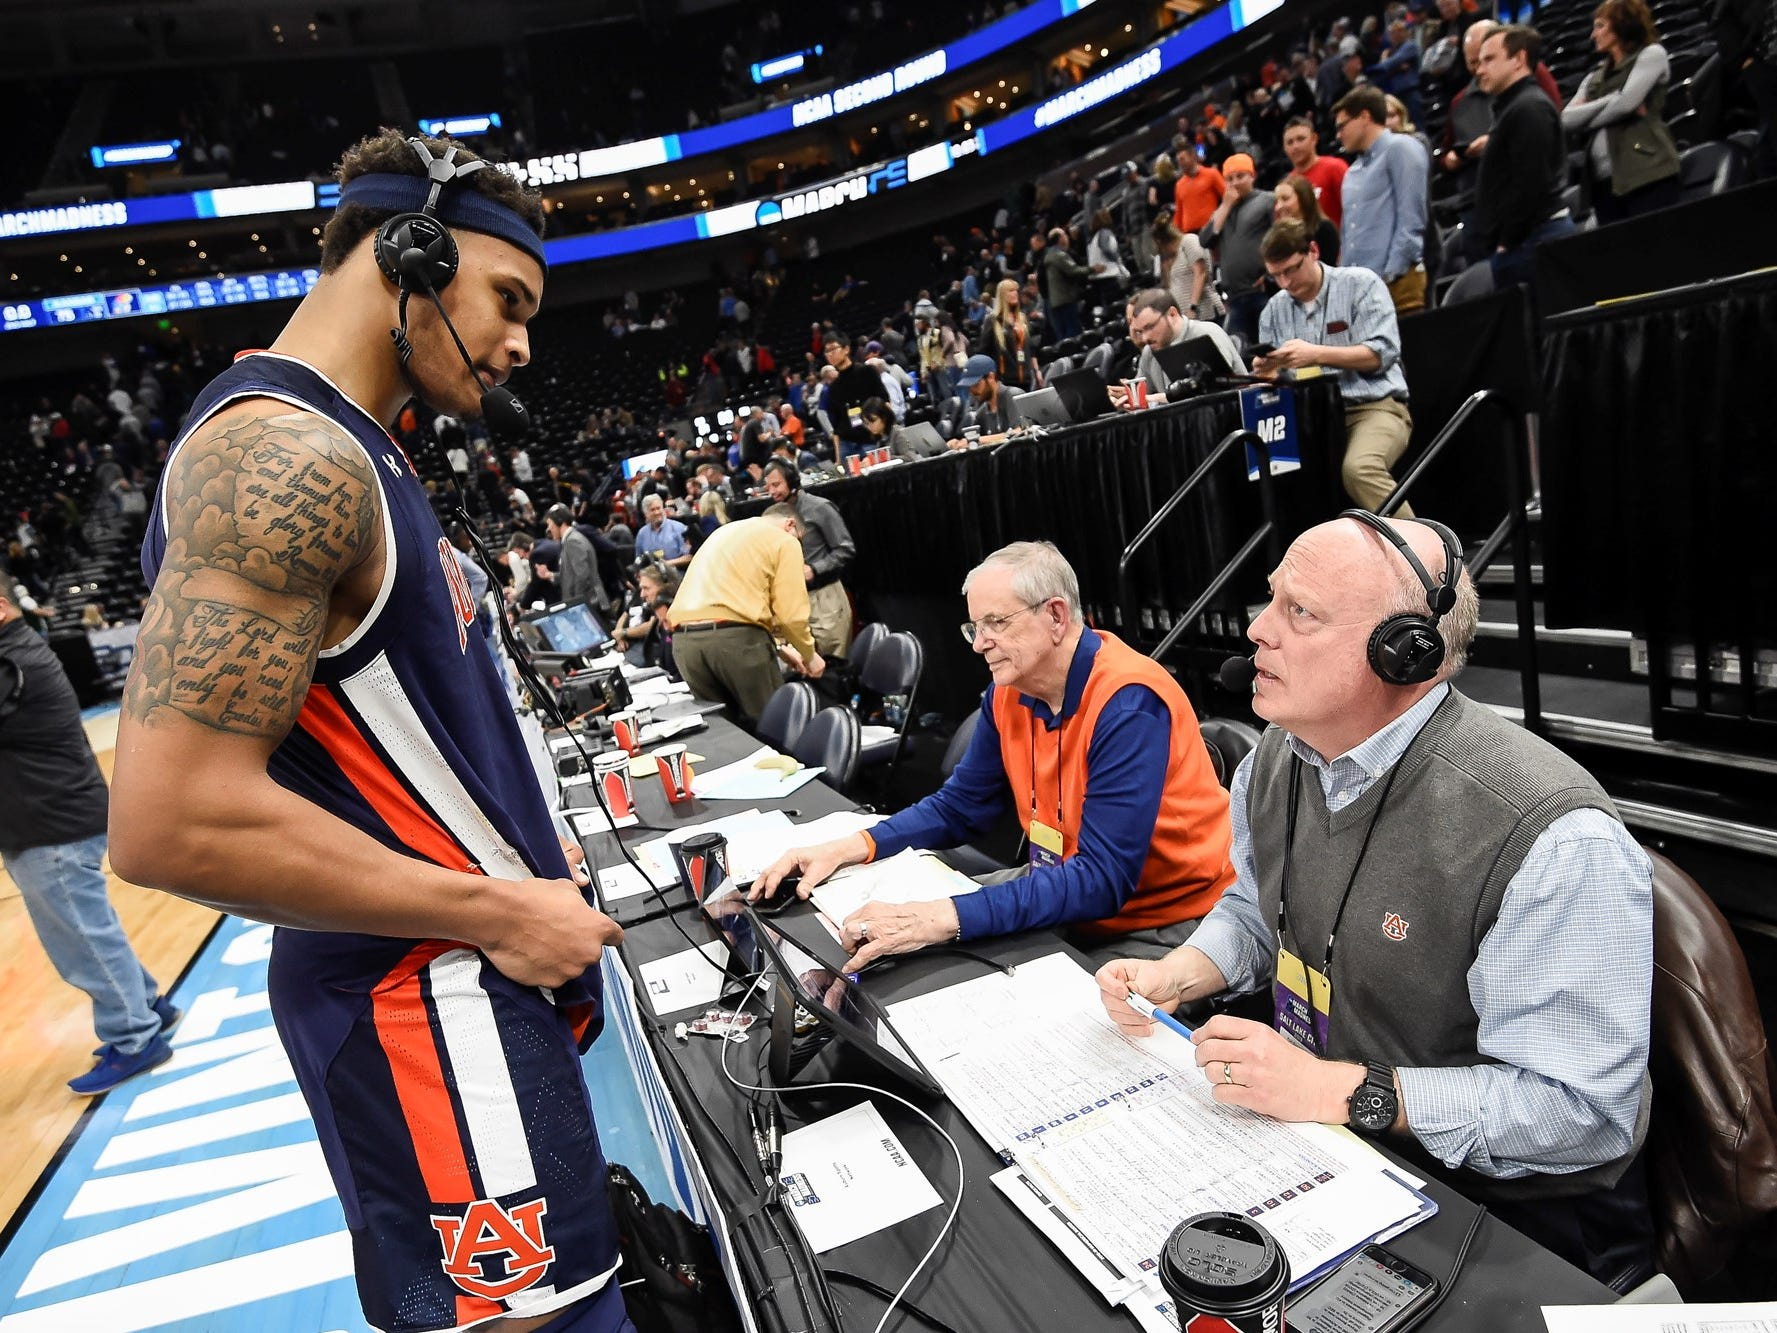 Auburn guard Bryce Brown (left) speaks to radio broadcast team Sonny Smith (center) and Rod Bramblett (right) during the second round of the NCAA Tournament in Salt Lake City.